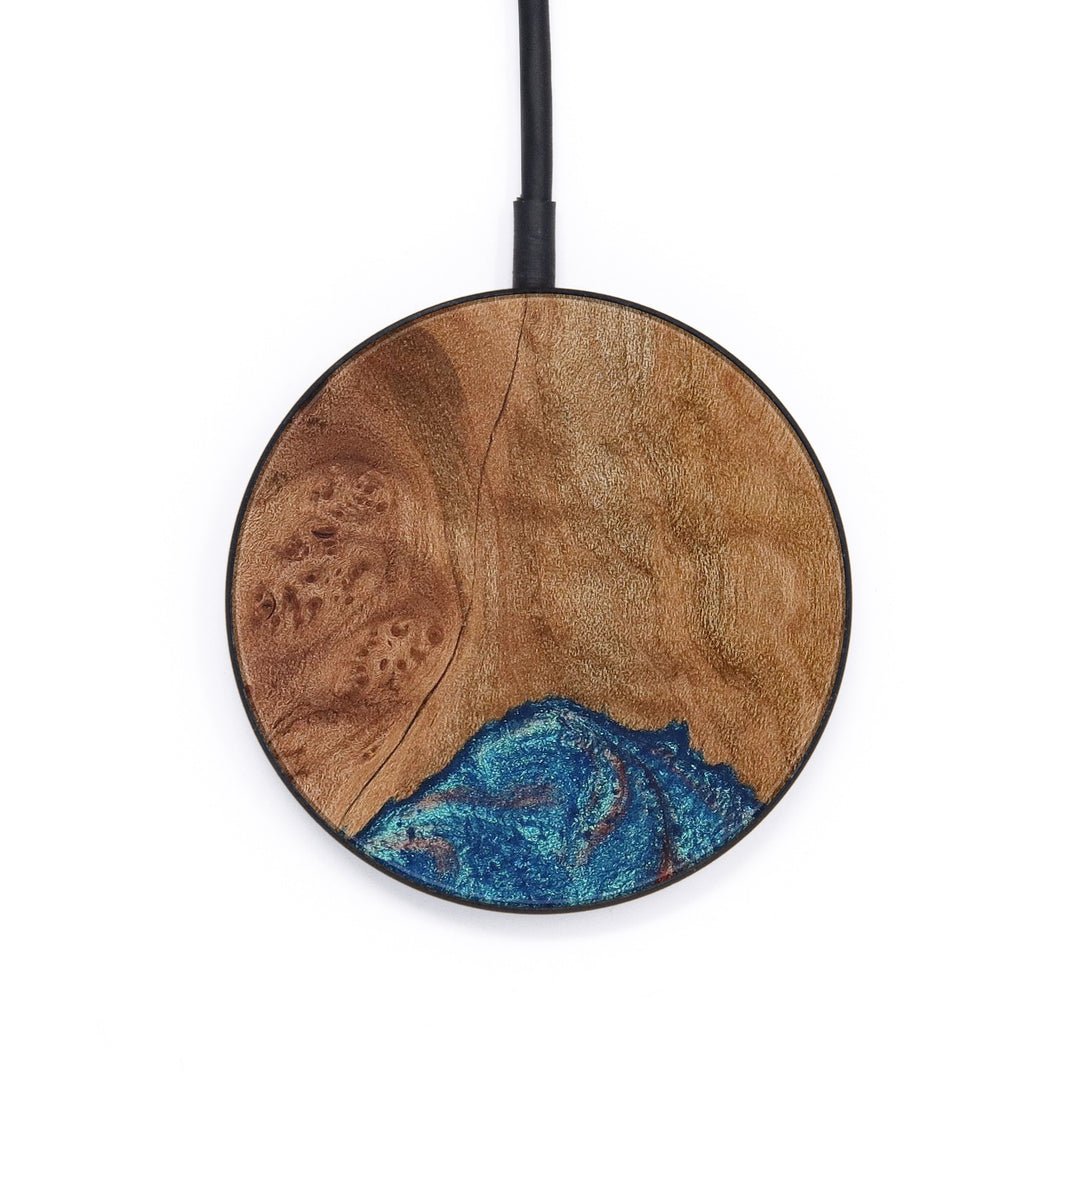 Circle Wood+Resin Wireless Charger - Isabel (Blue & Red, 386846)